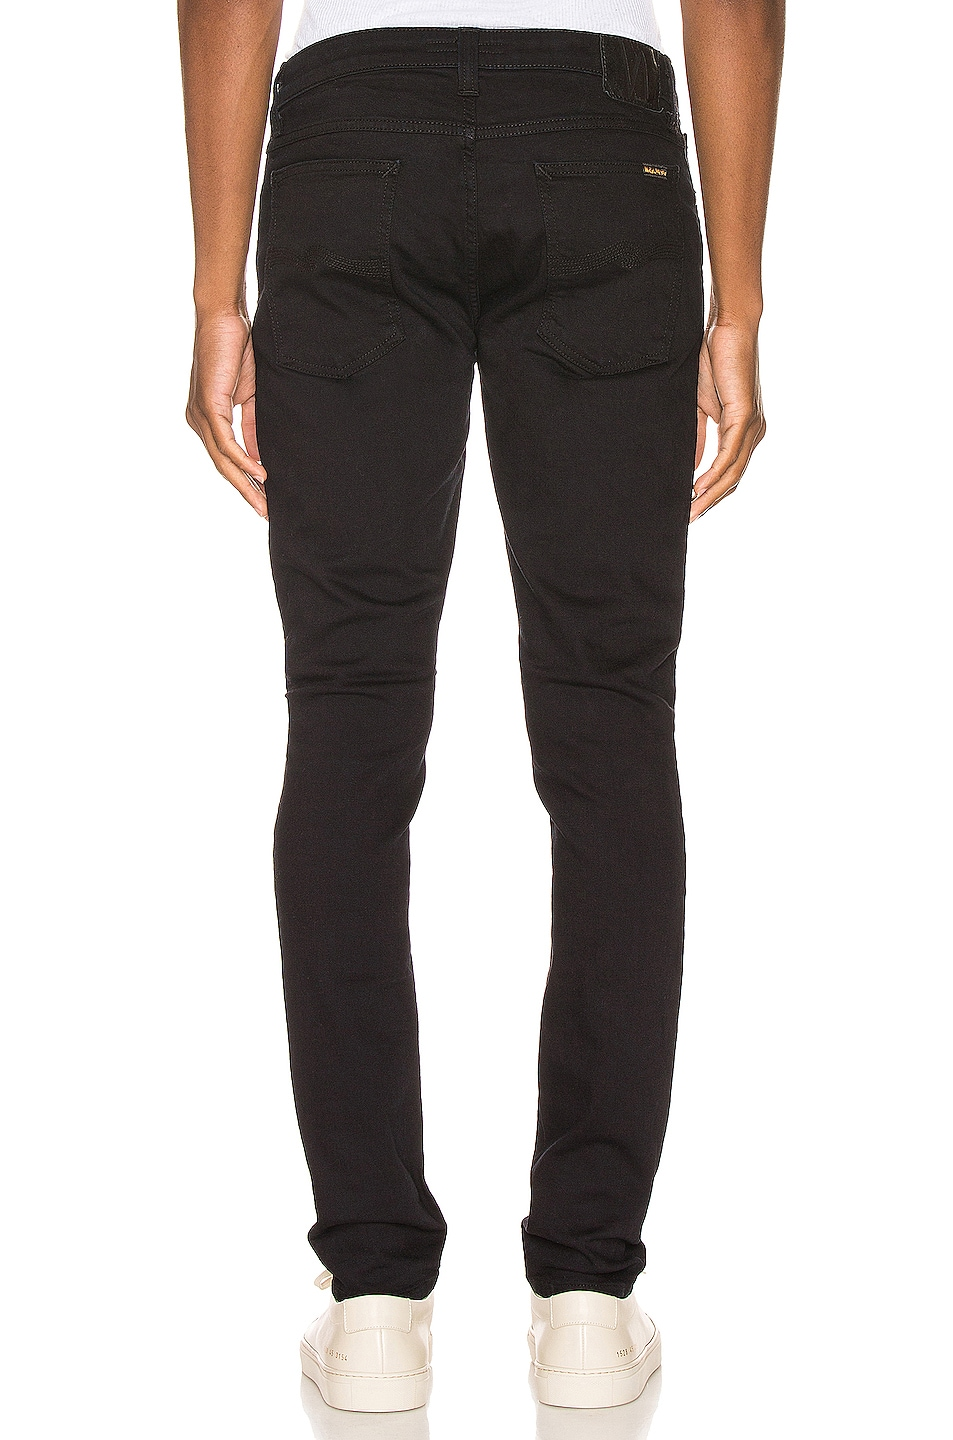 Image 3 of Nudie Jeans Skinny Lin in Black Black